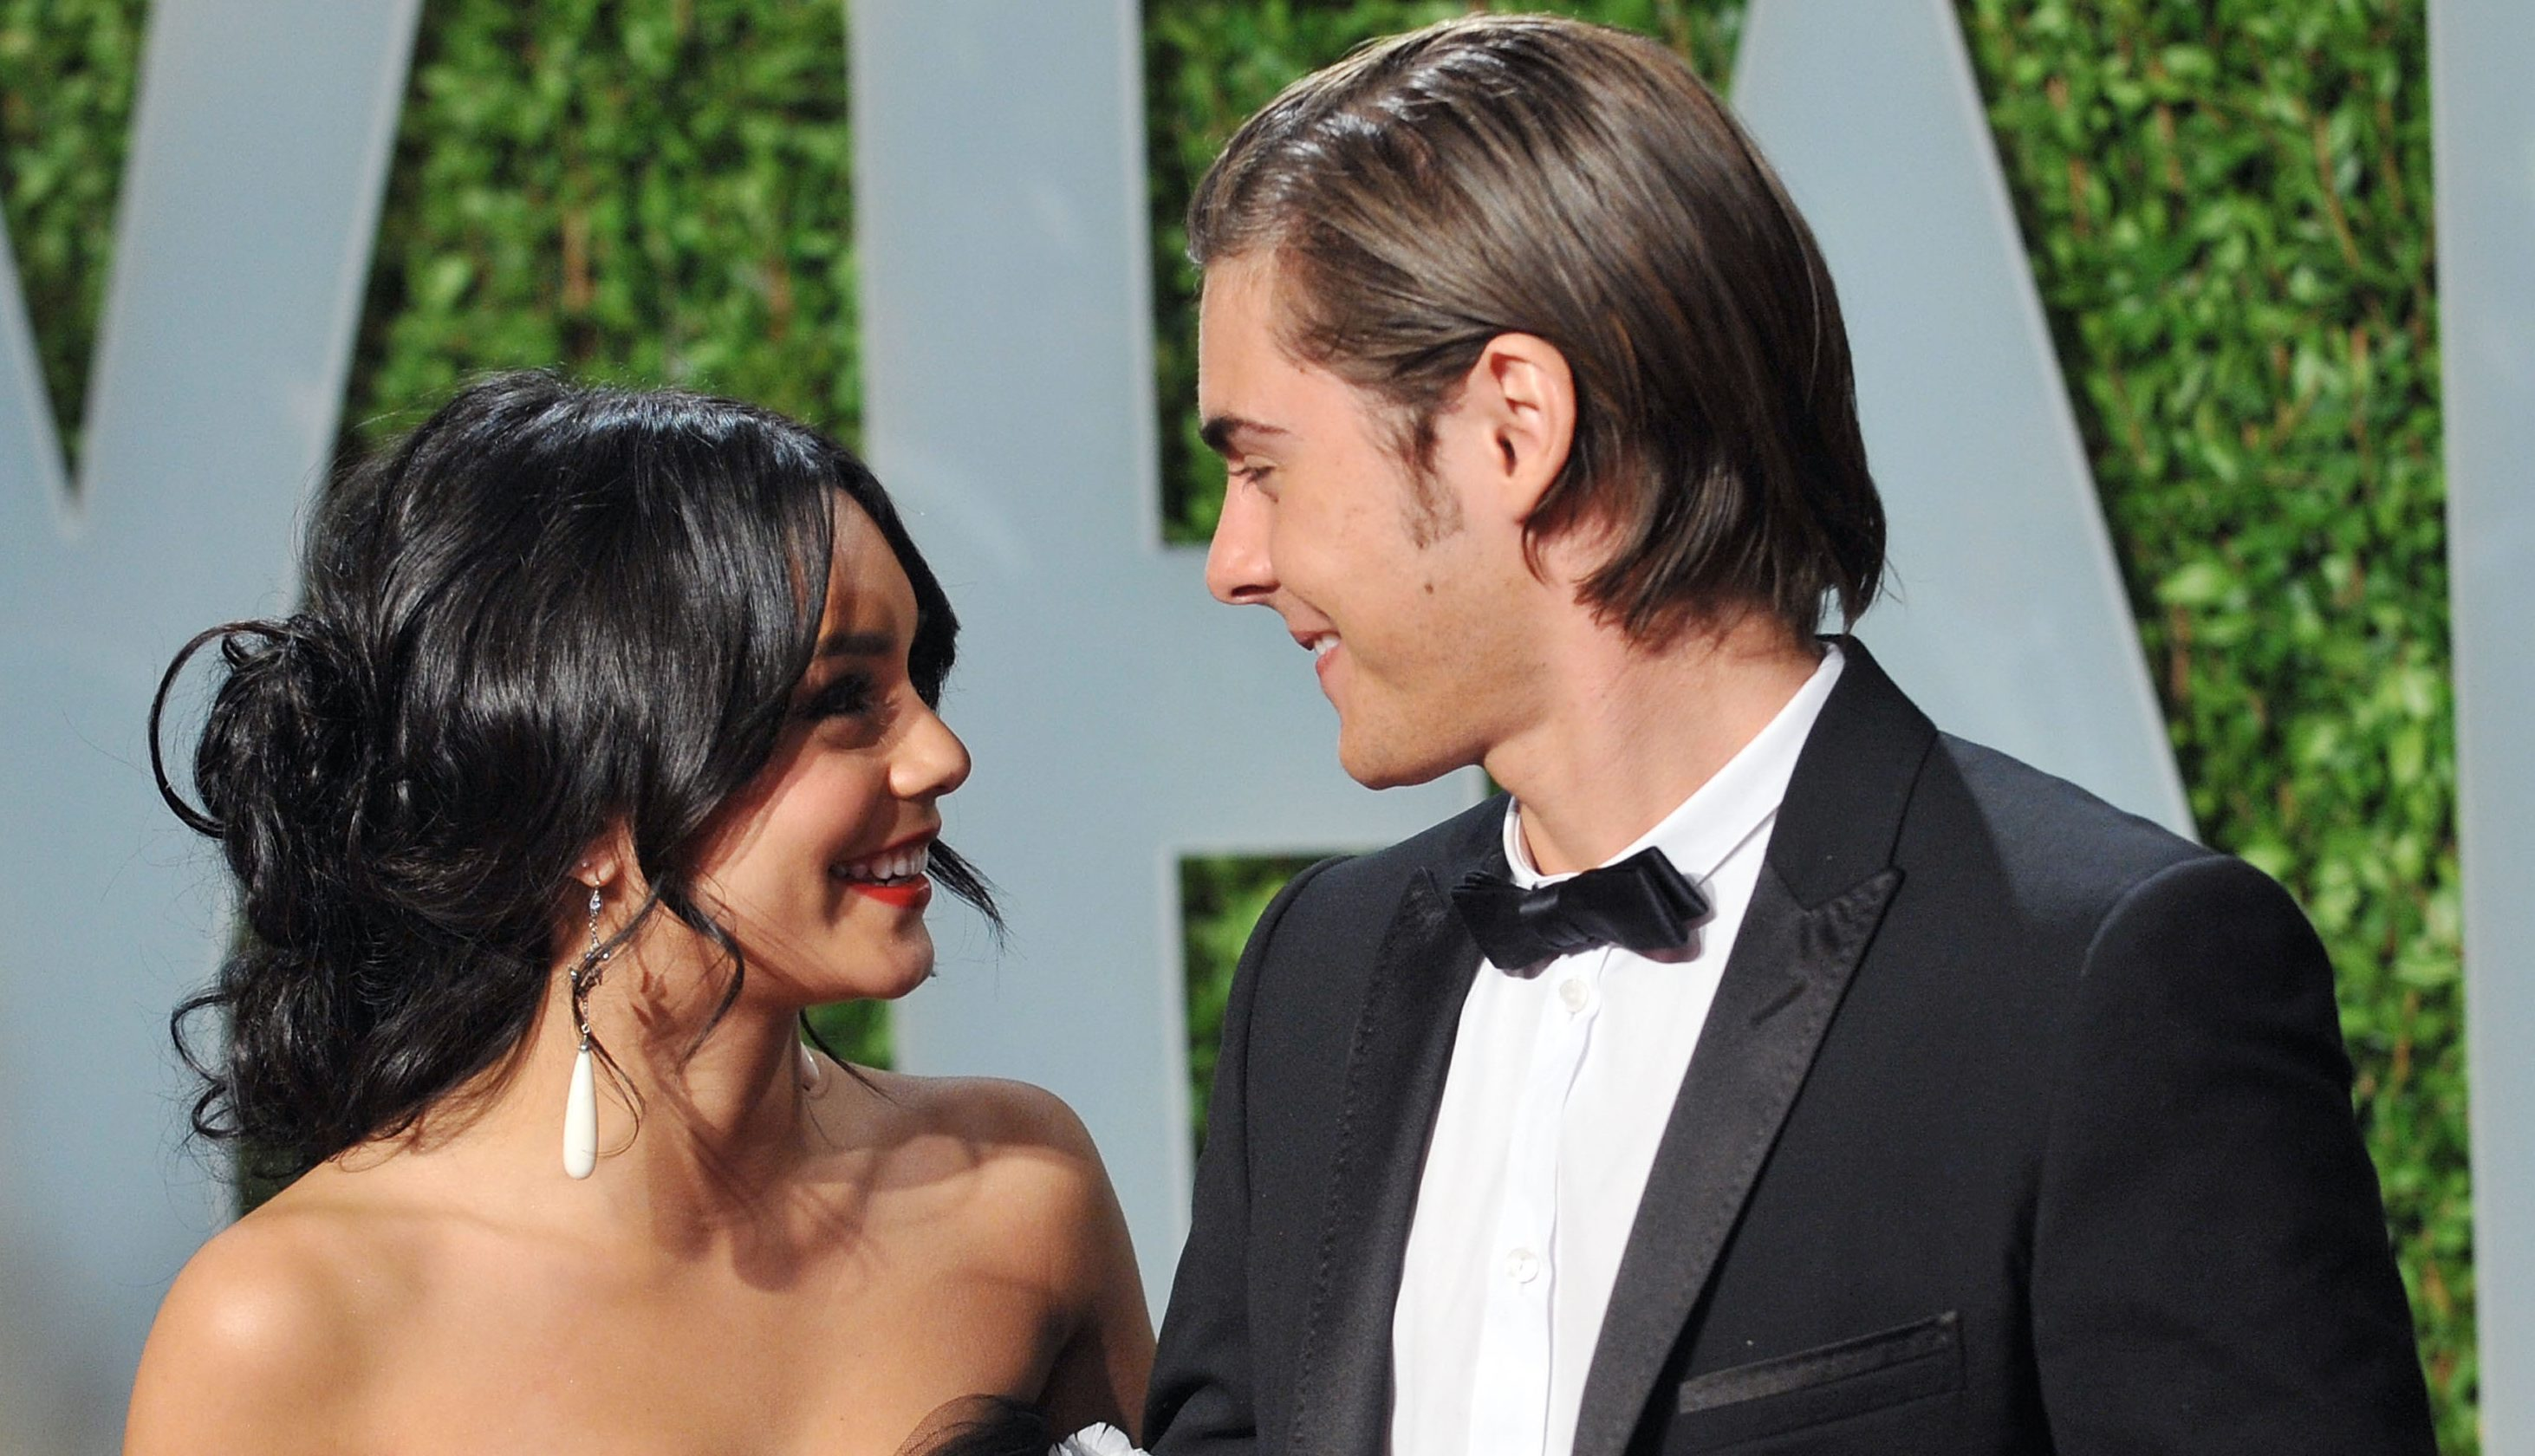 High School Musical's Zac Efron and Vanessa Hudgens